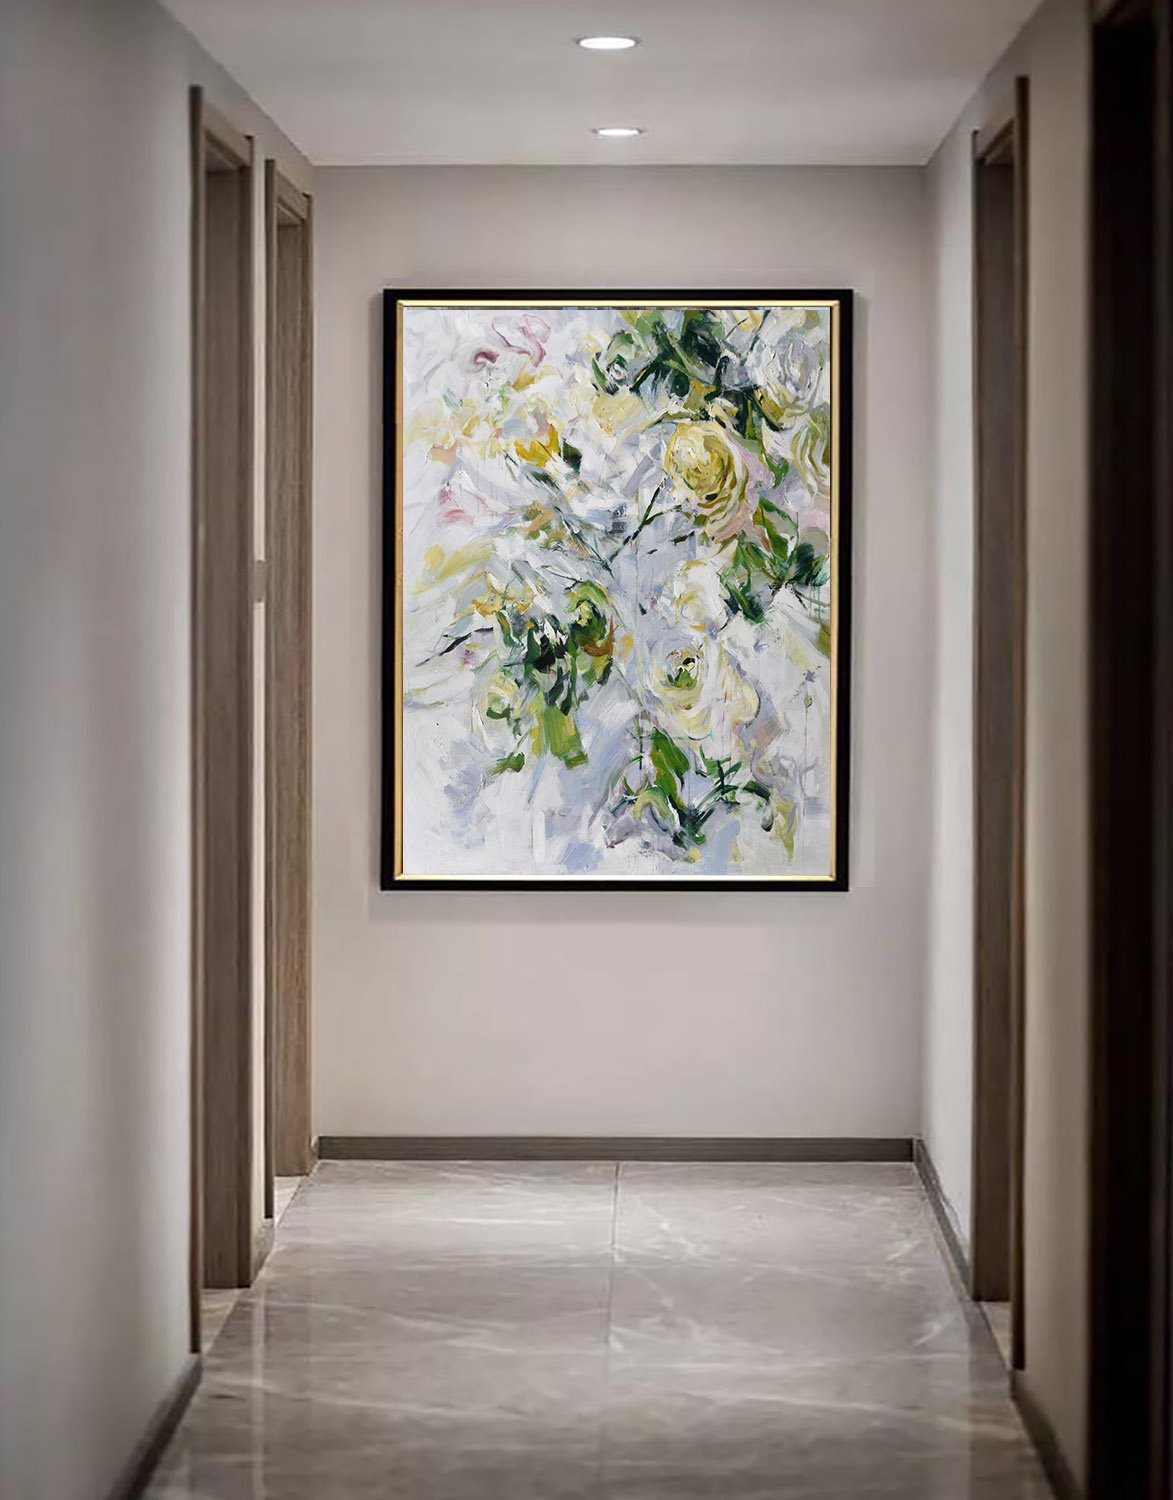 Extra Large Living Room Wall Art: Extra Large Acrylic Painting On Canvas,Oversized Abstract